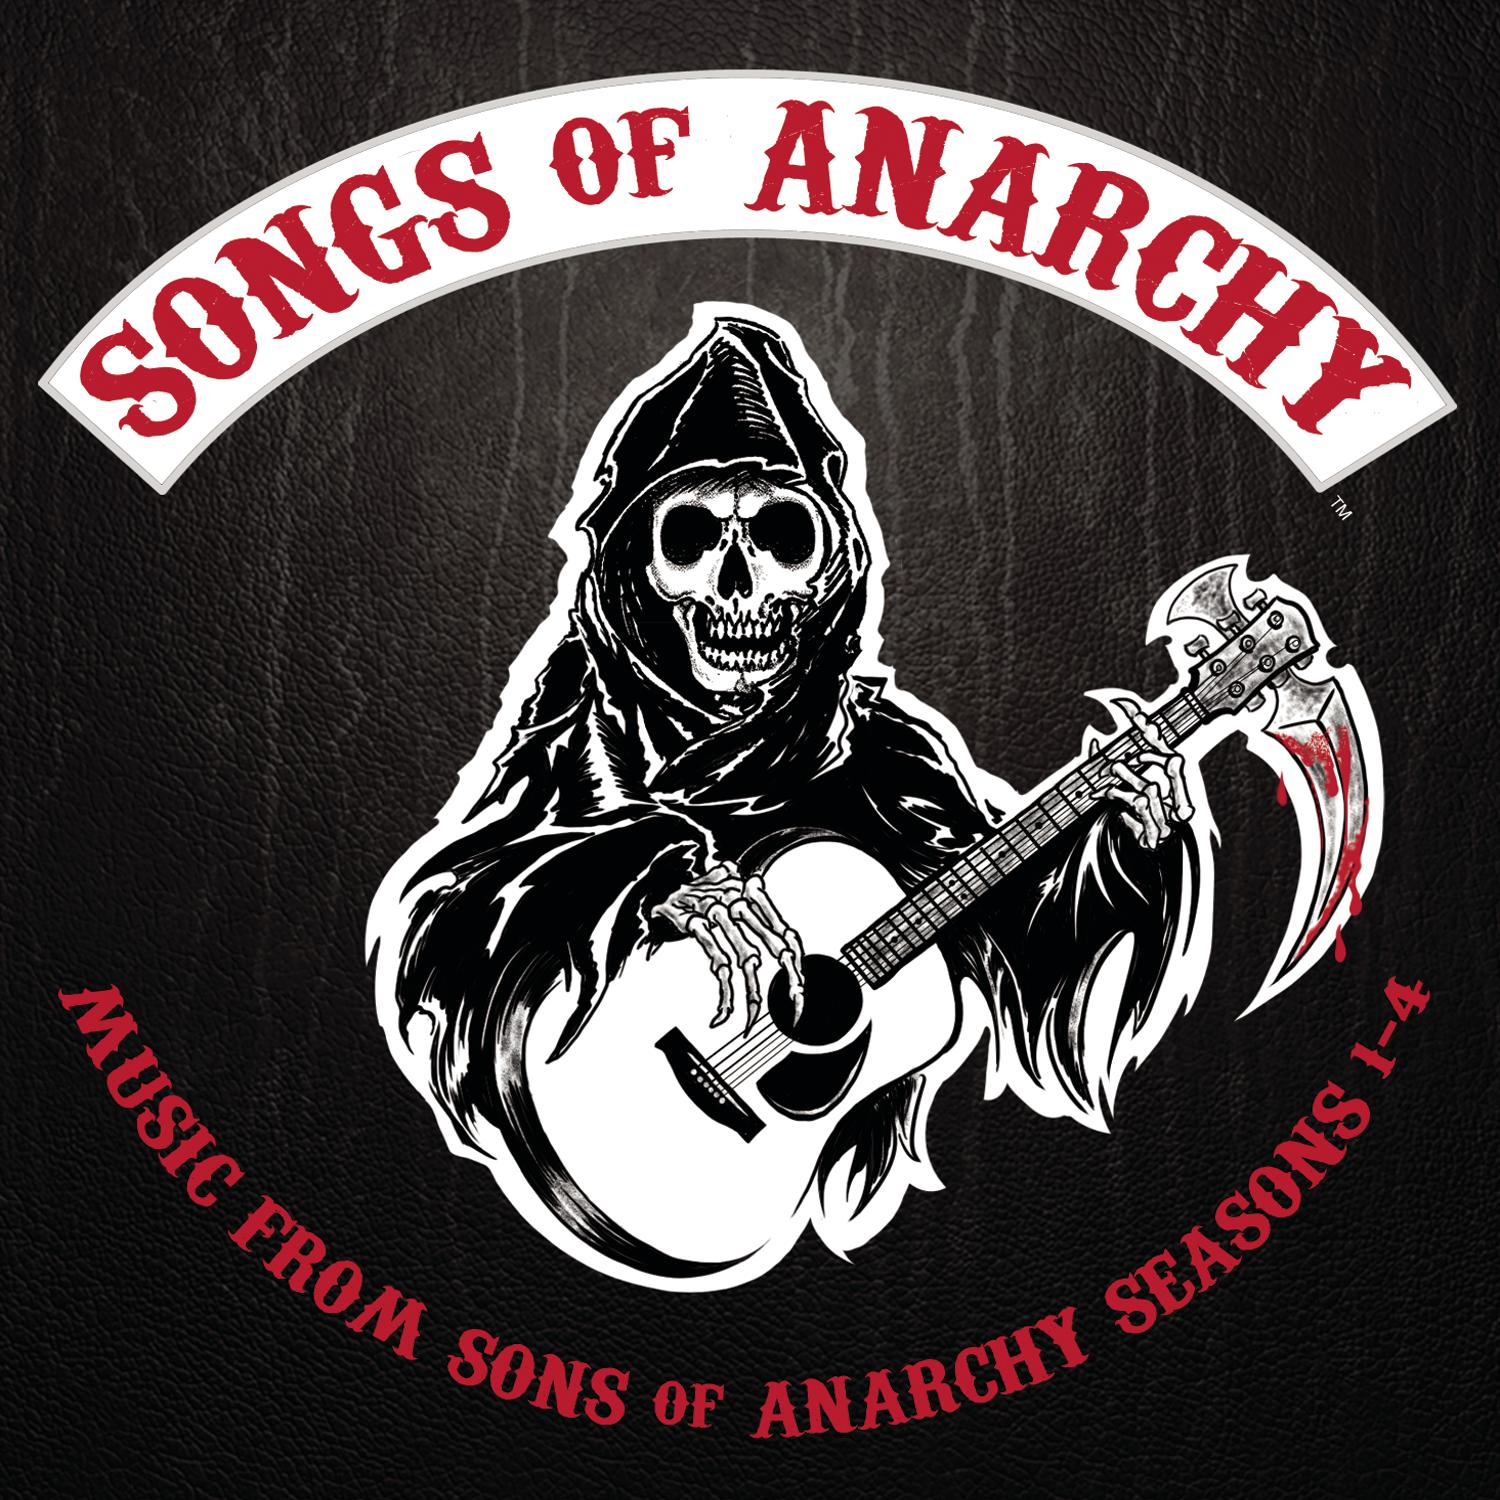 Various - Songs Of Anarchy: Music From Sons Of Anarchy Seasons 1-4